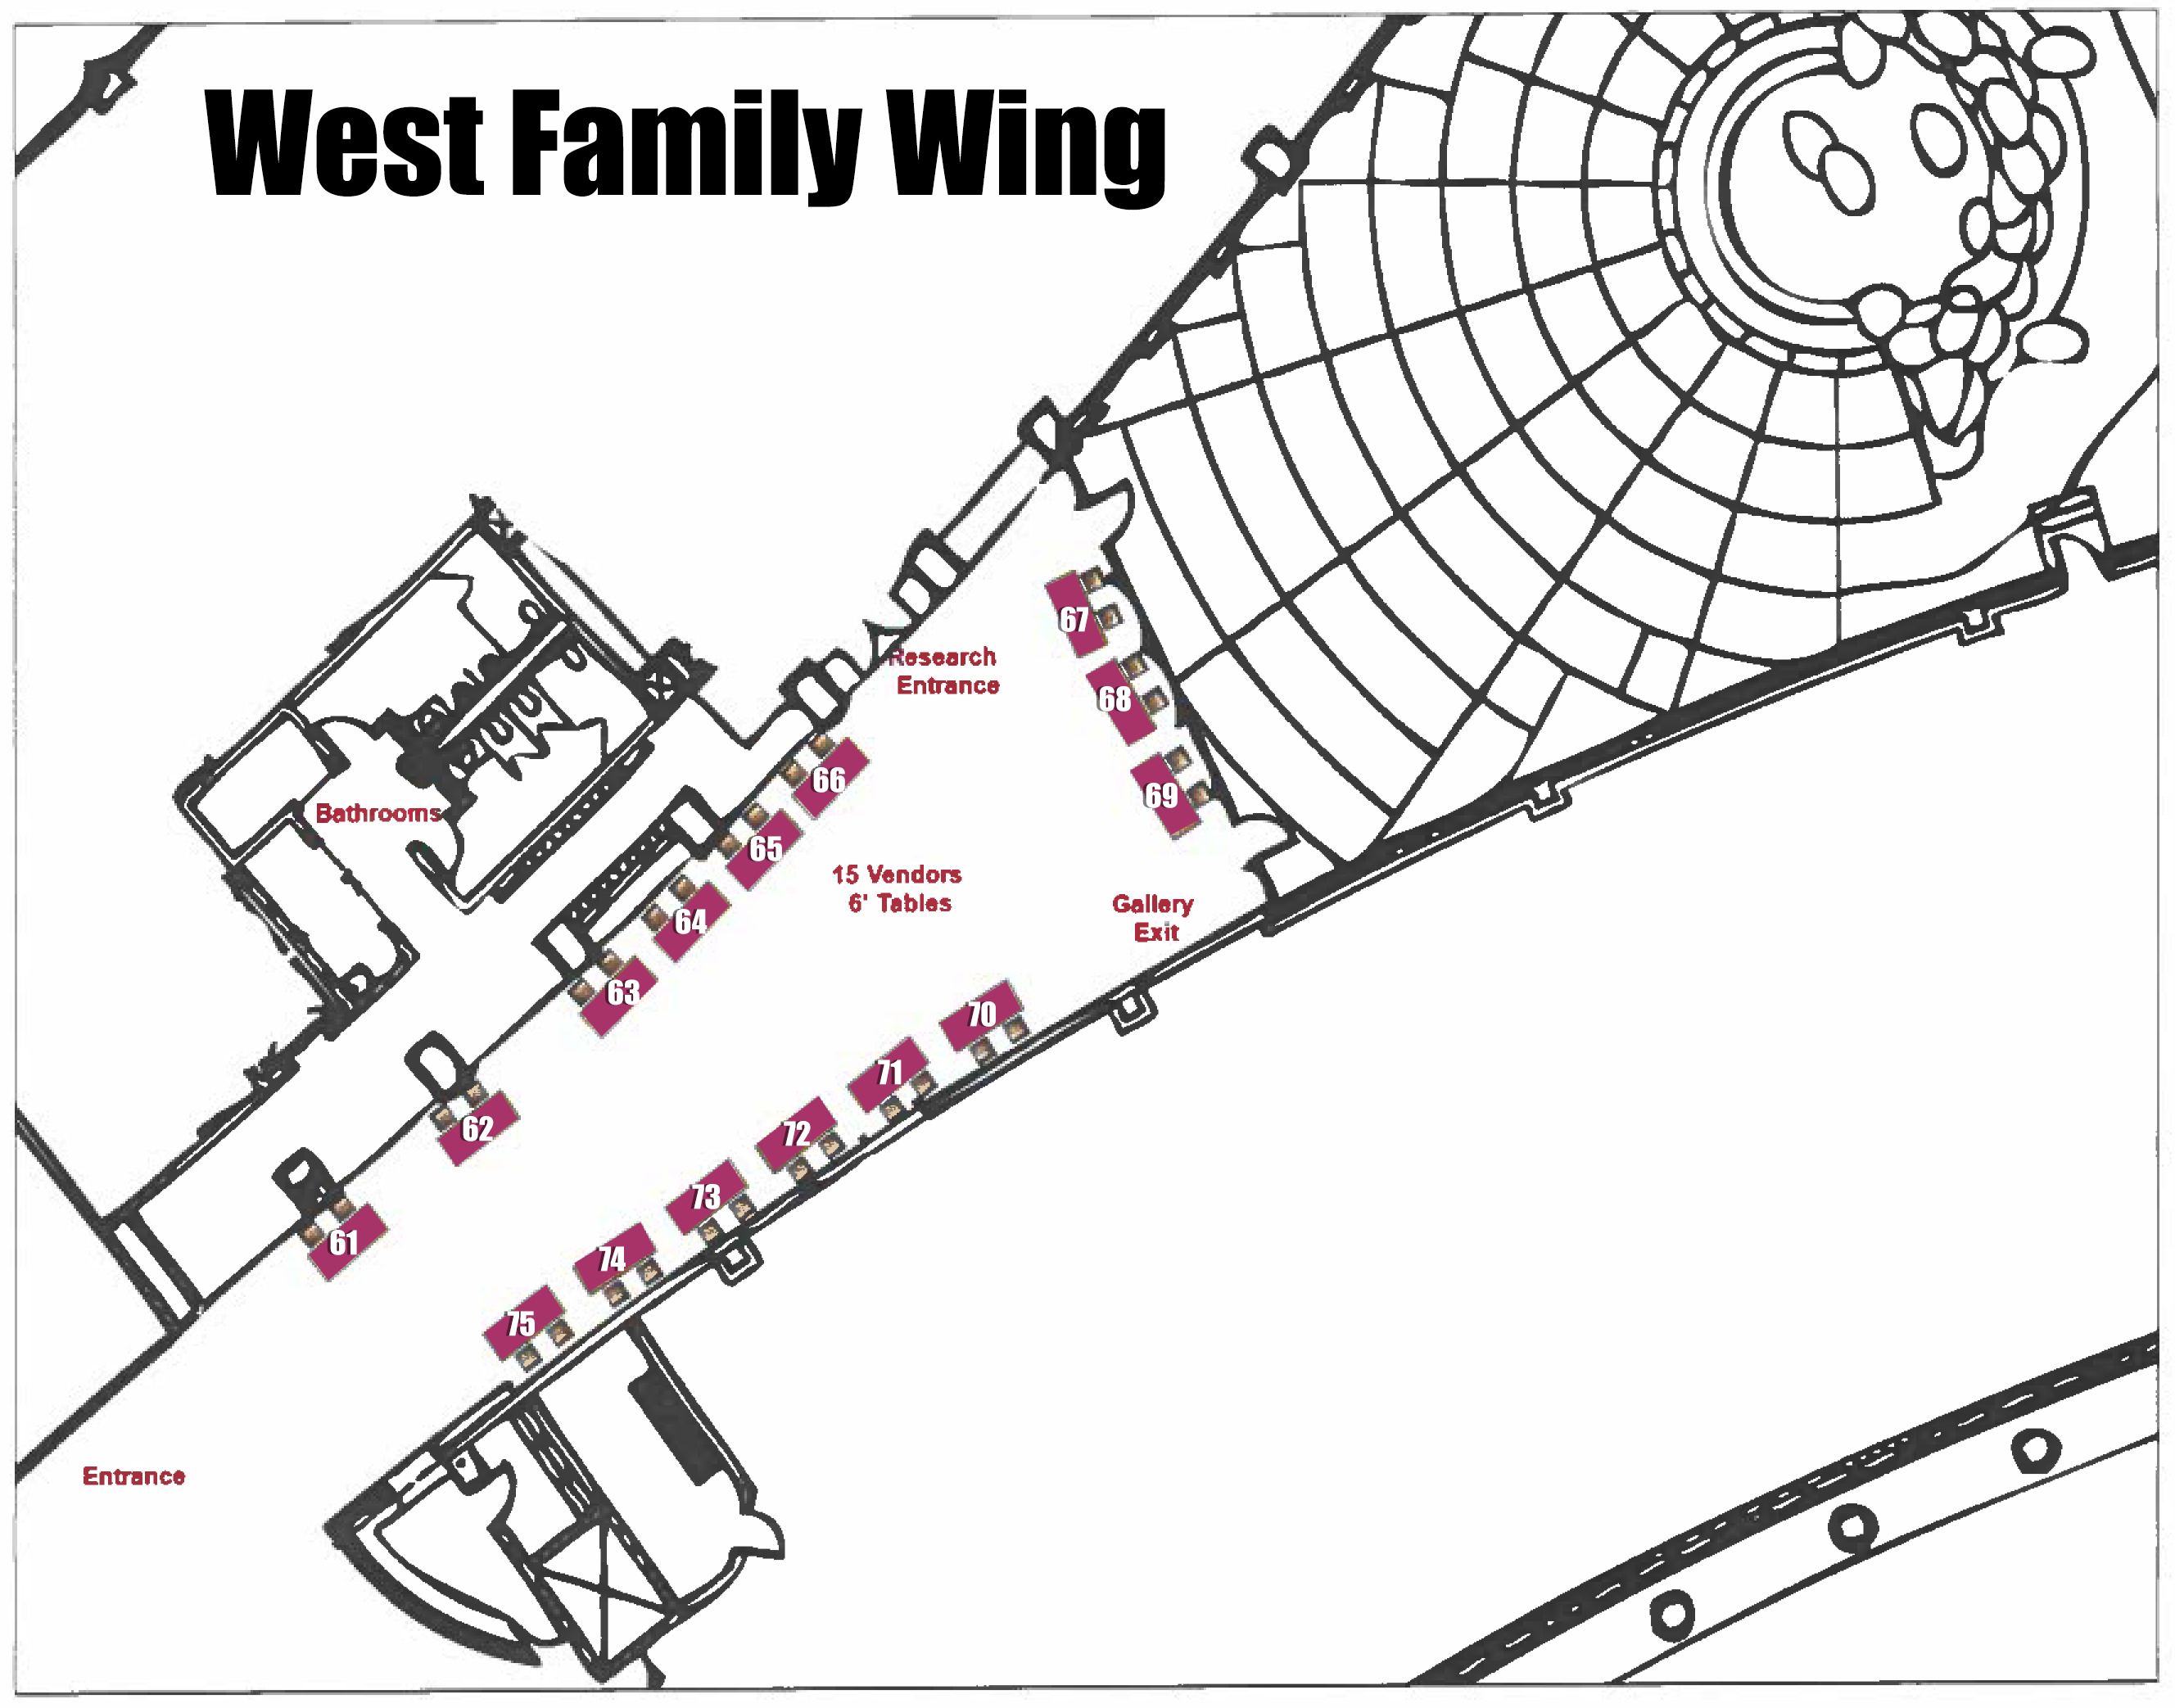 Floor plan set up for the West Family Wing